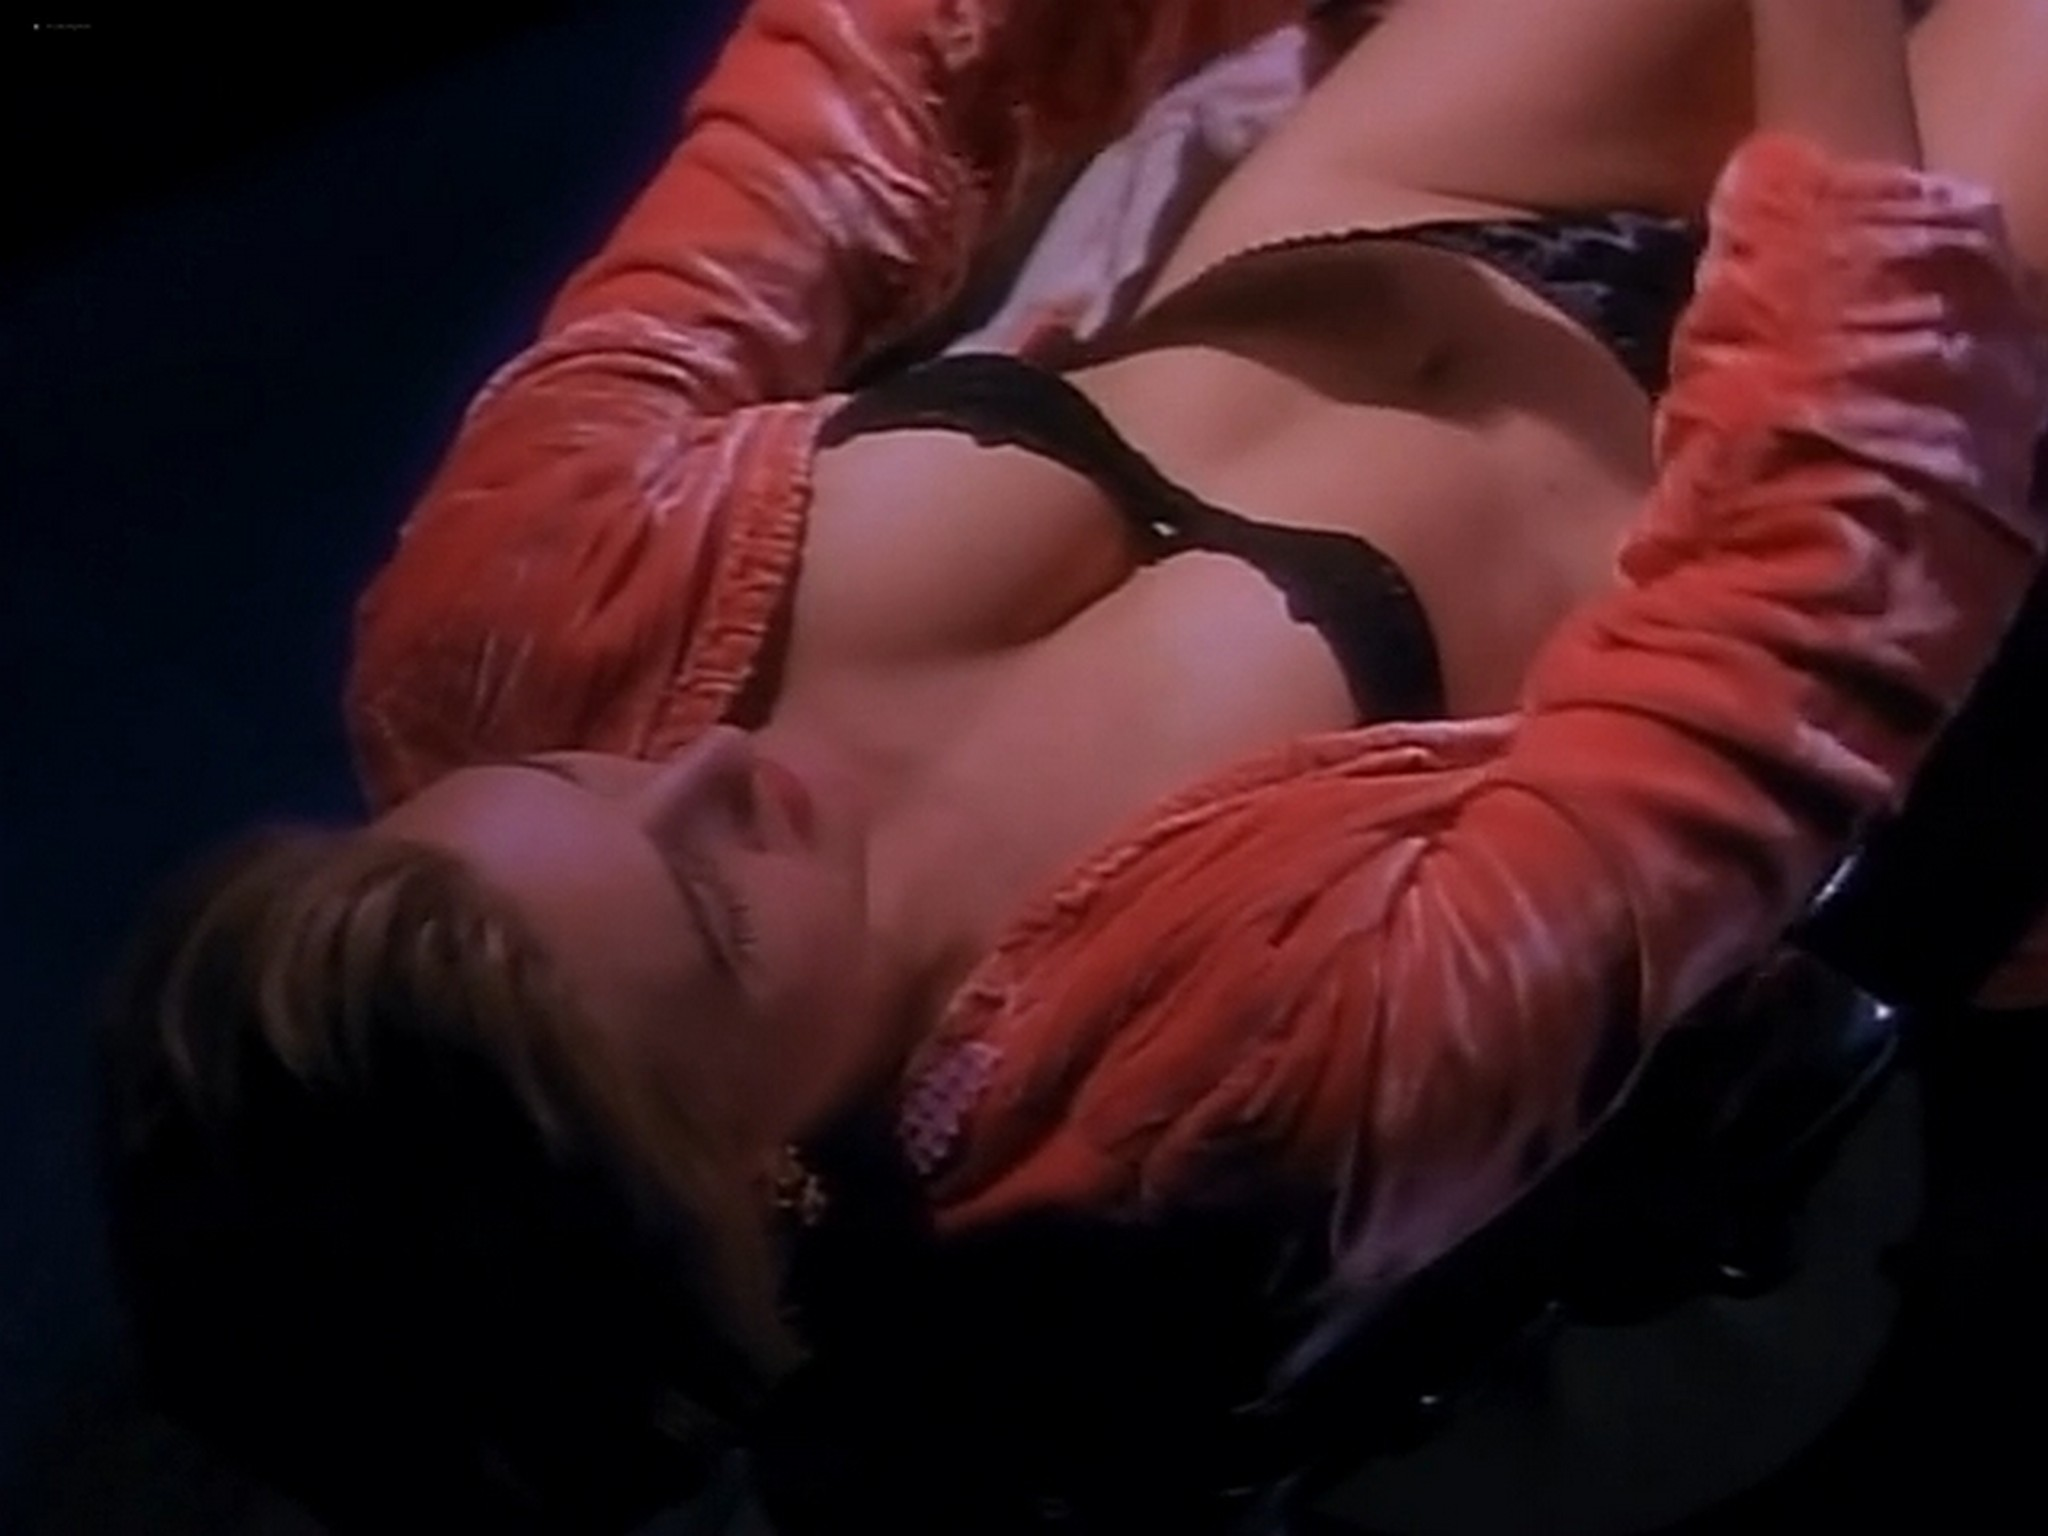 Denise Crosby nude and sex Red Shoe Diaries You Have the Right to Remain Silent 1992 DVDRip 2